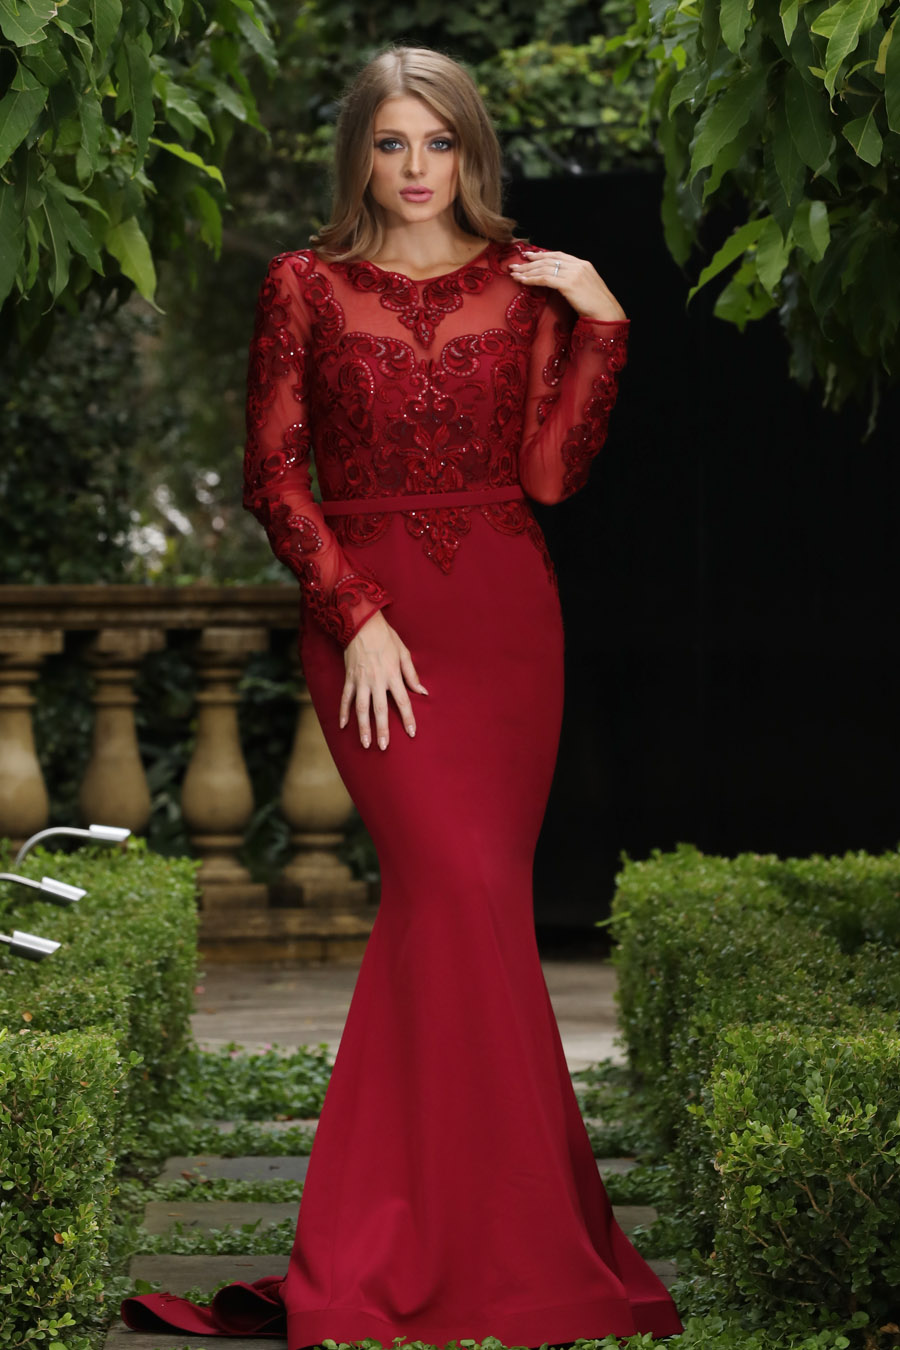 Full length fit and flare gown, with a lace bodice, full length sleeve. The skirt is plain with a detailed train. Shown in the colour Burgundy.